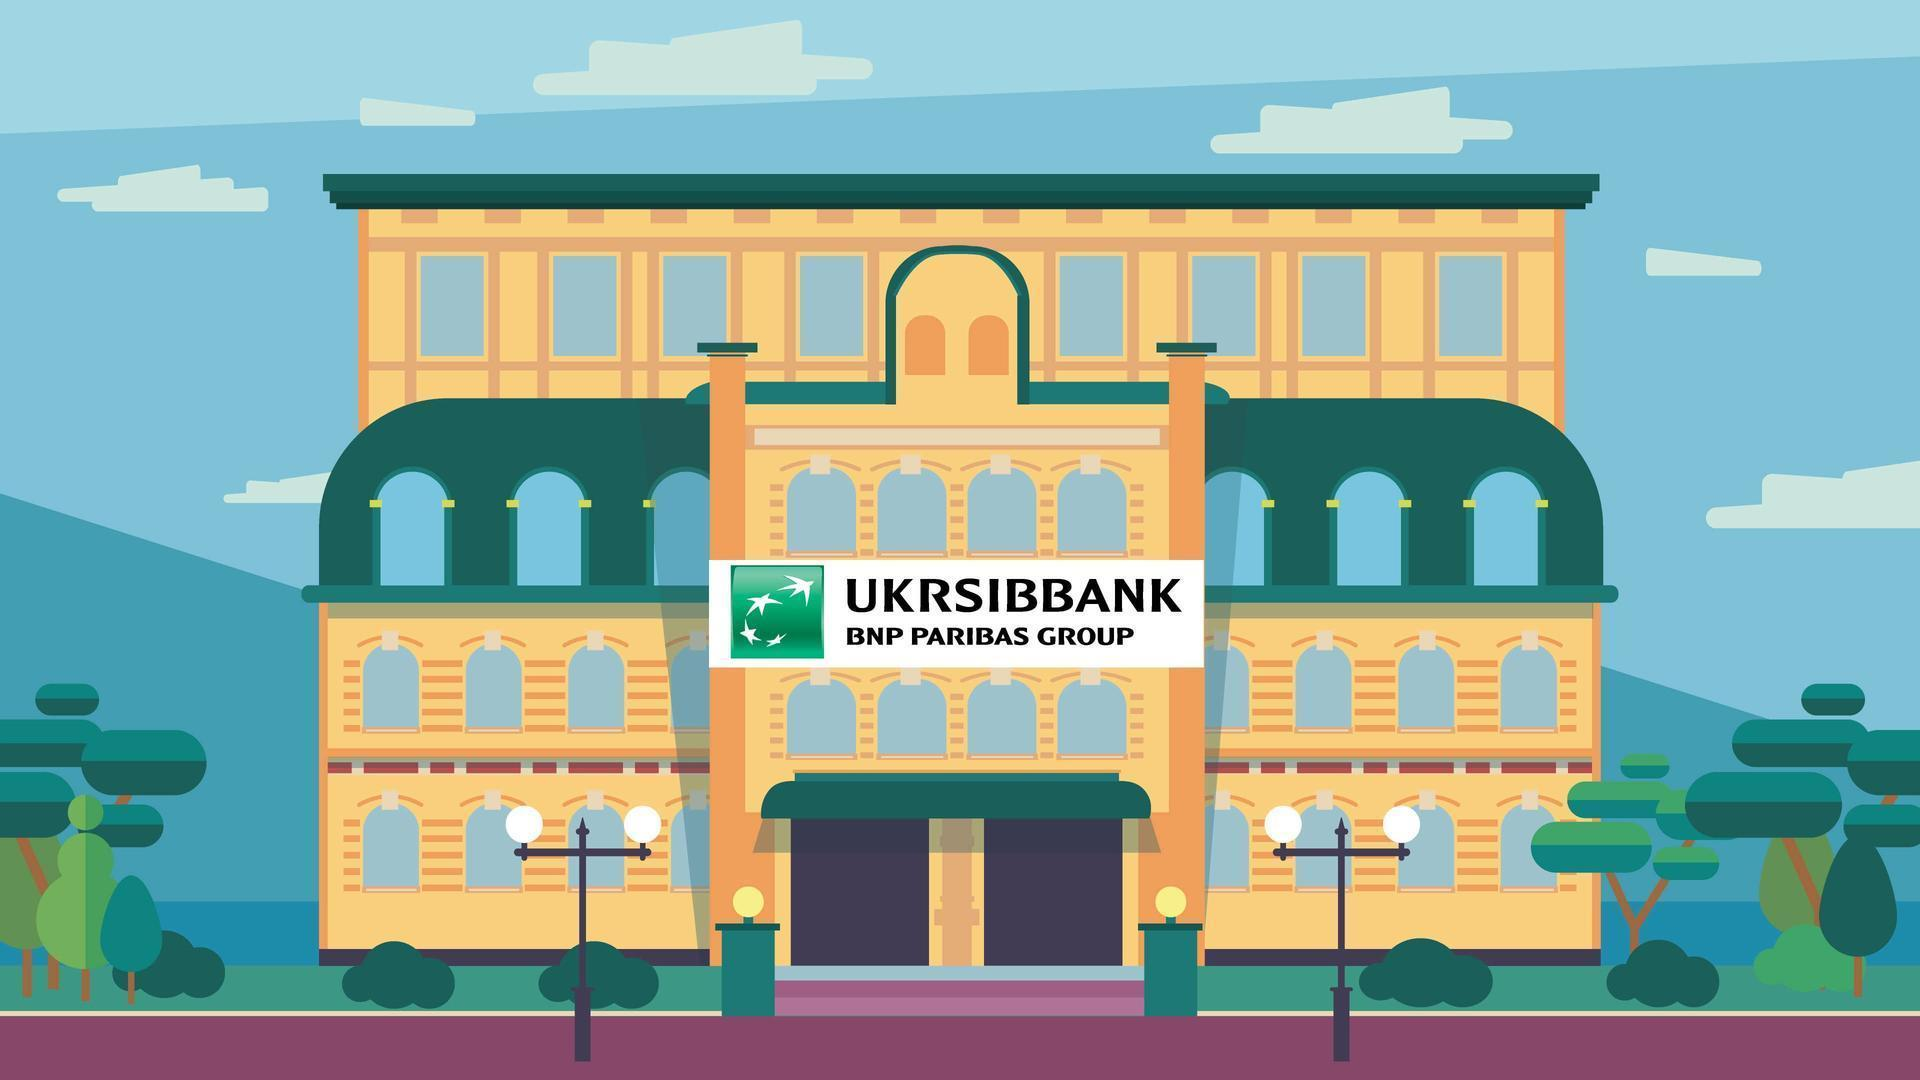 Case: Development of 2D Video and banner advertising for UKRSIBBANK — Rubarb - Image - 1